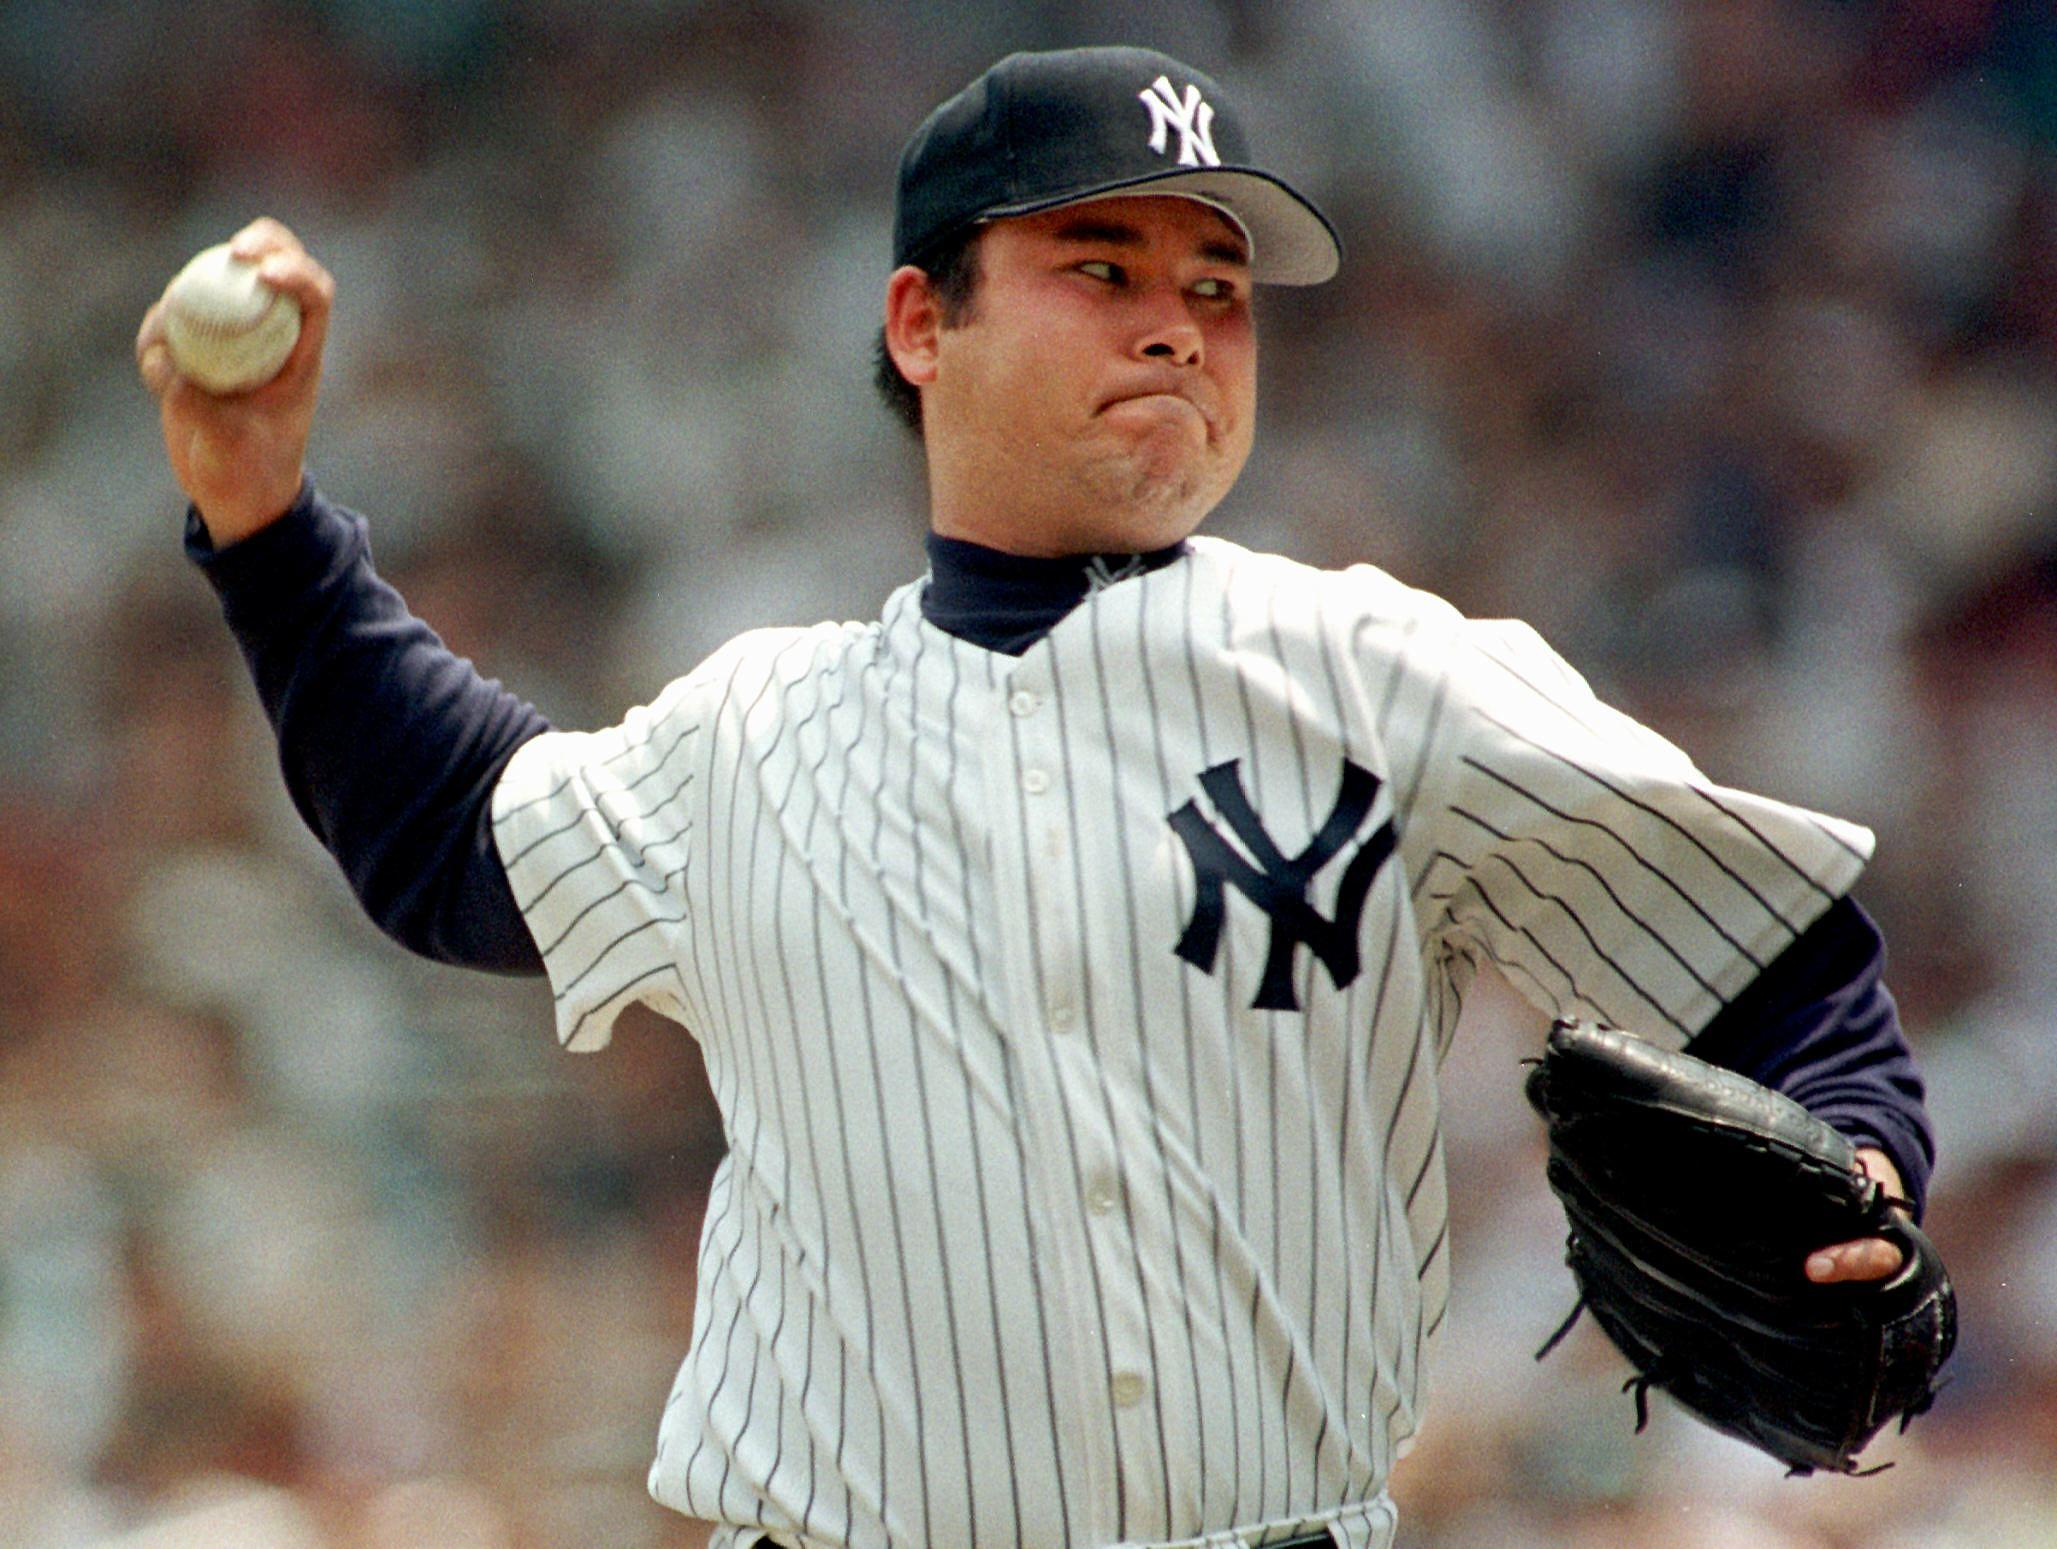 Former New York Yankees pitcher Hideki Irabu, a Japanese import, changed free agency forever.